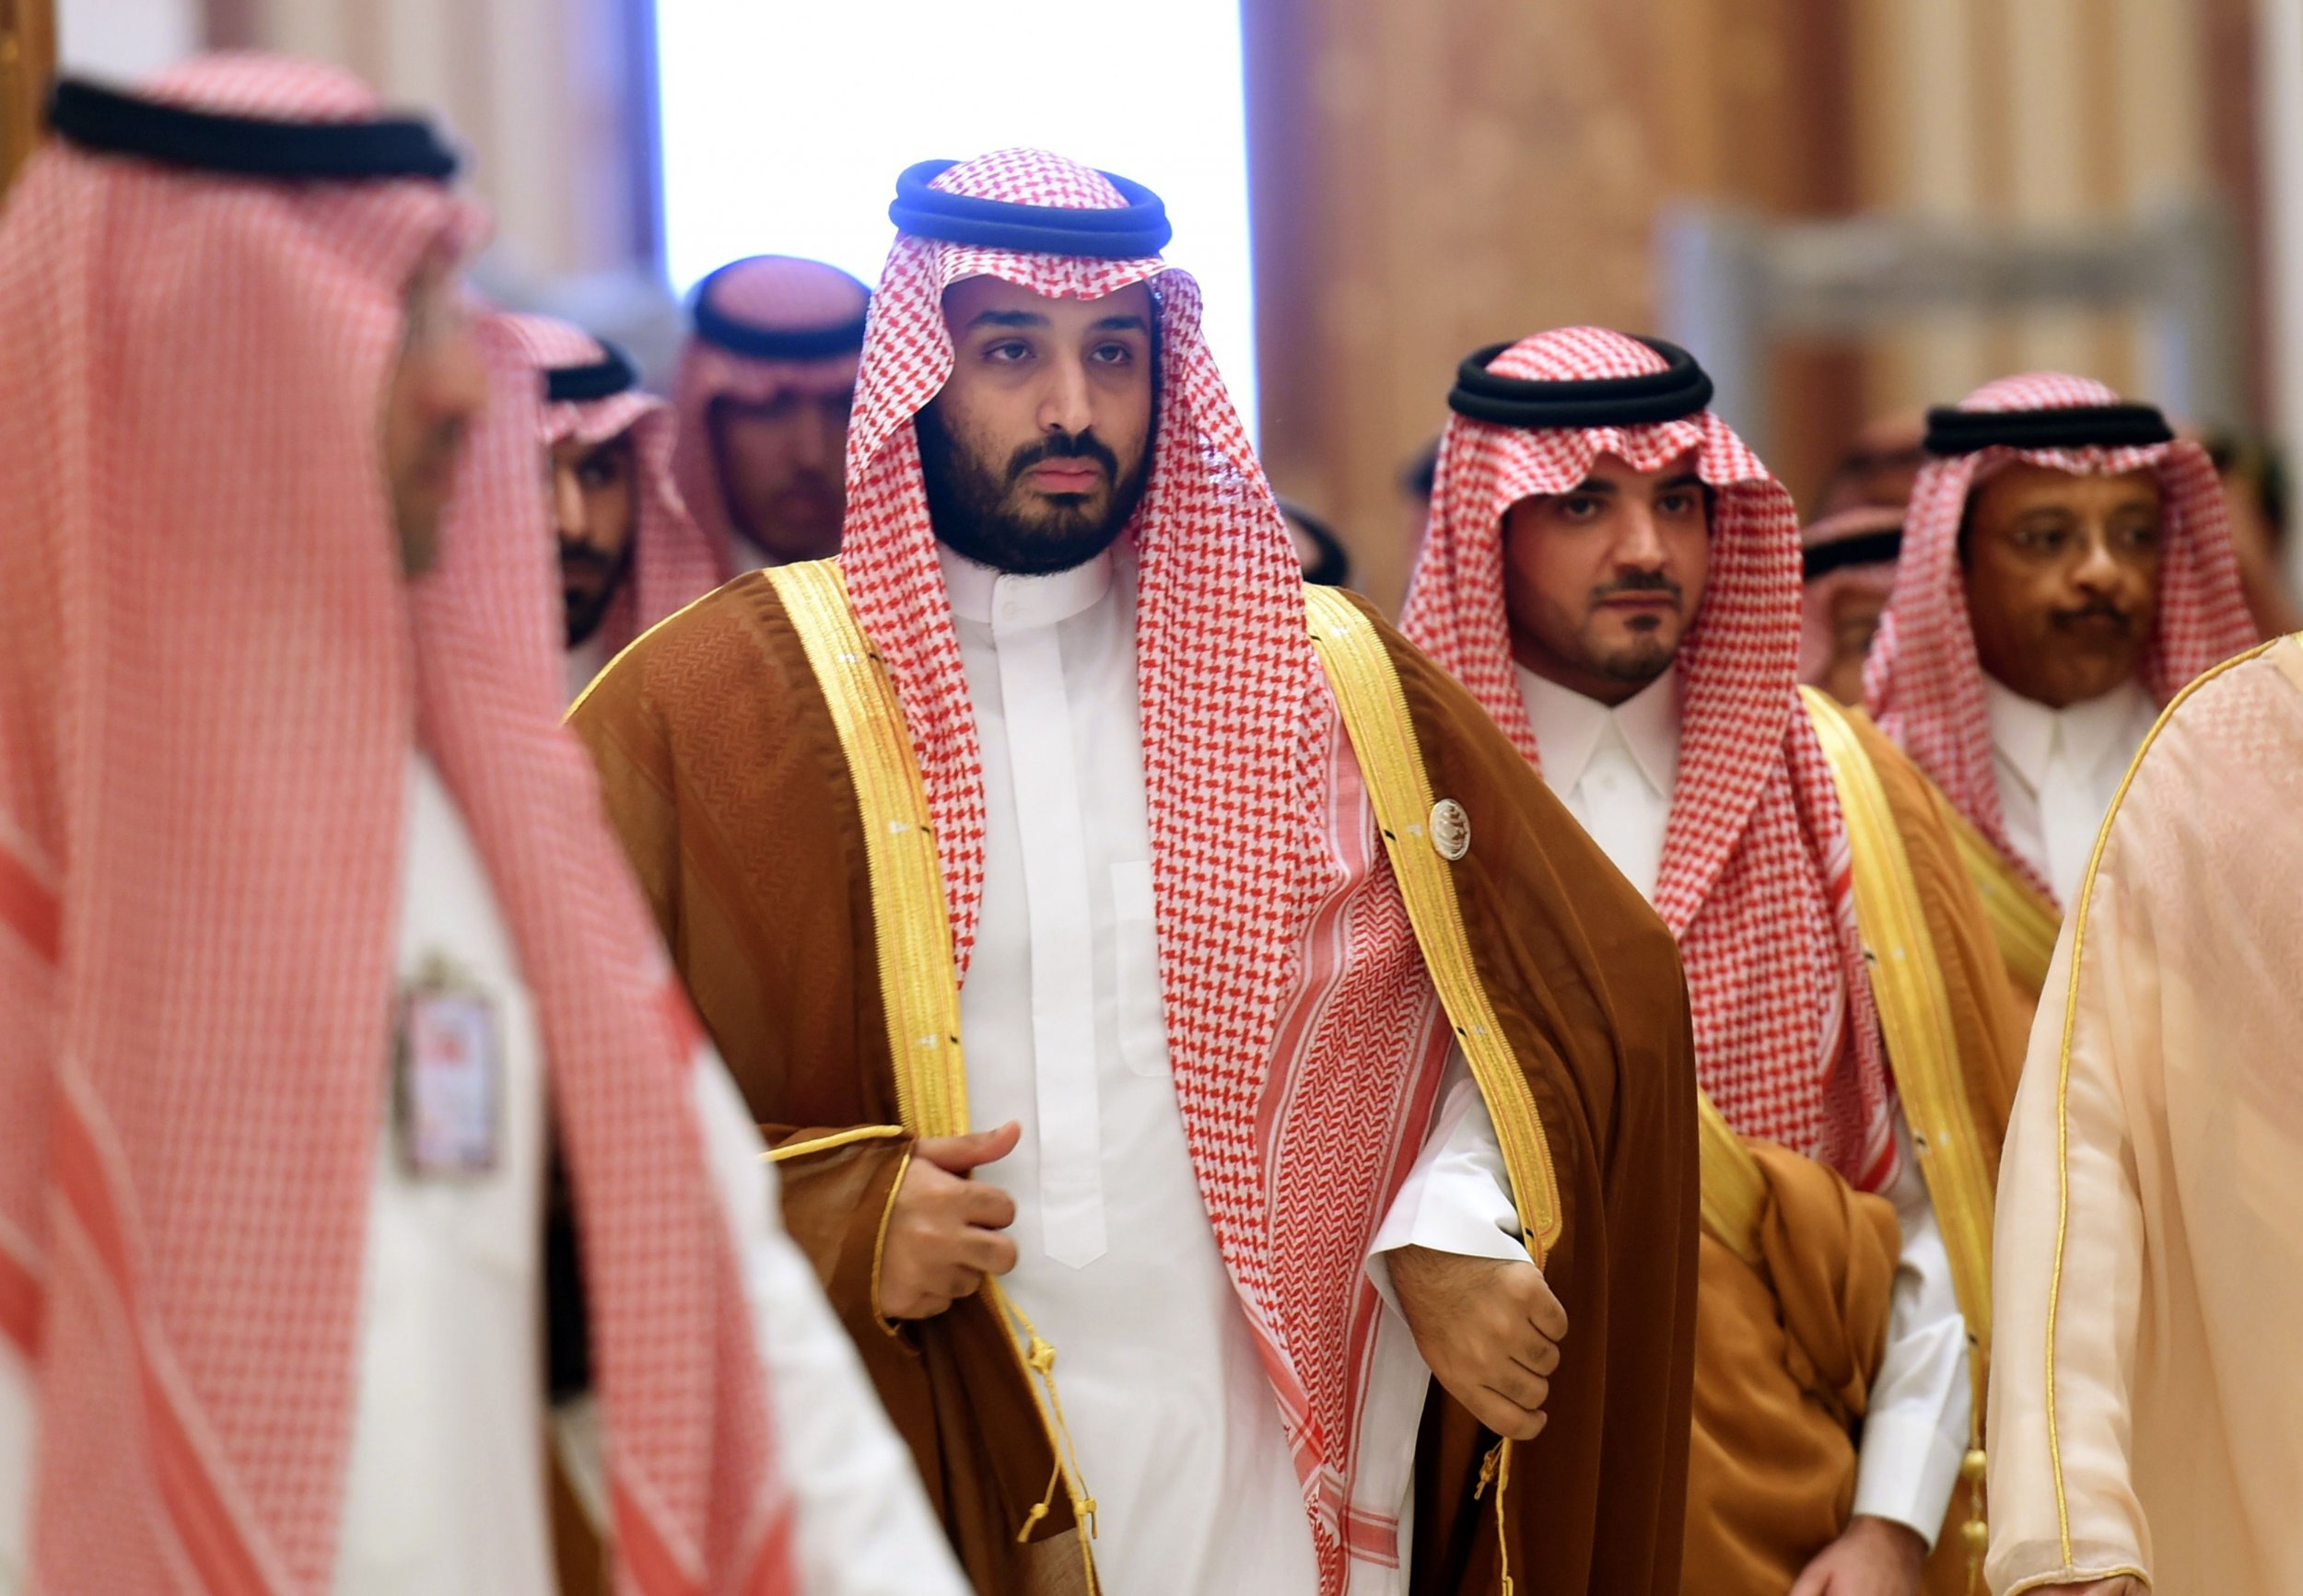 Does The Execution of Saudi Prince Turki Signal Progress in the Gulf